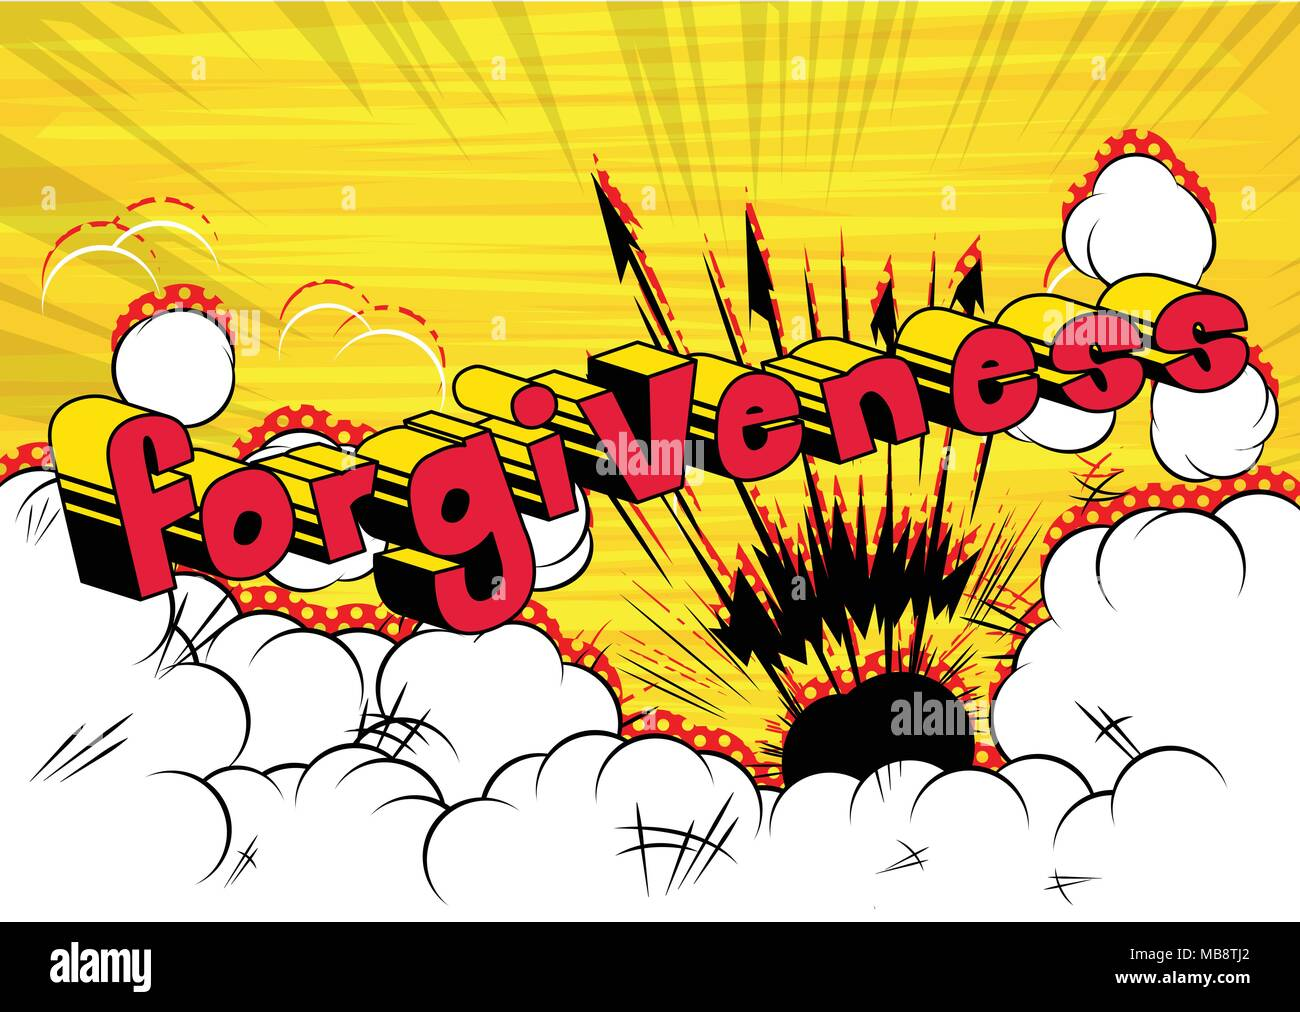 Forgiveness - Comic book style phrase on abstract background. - Stock Image